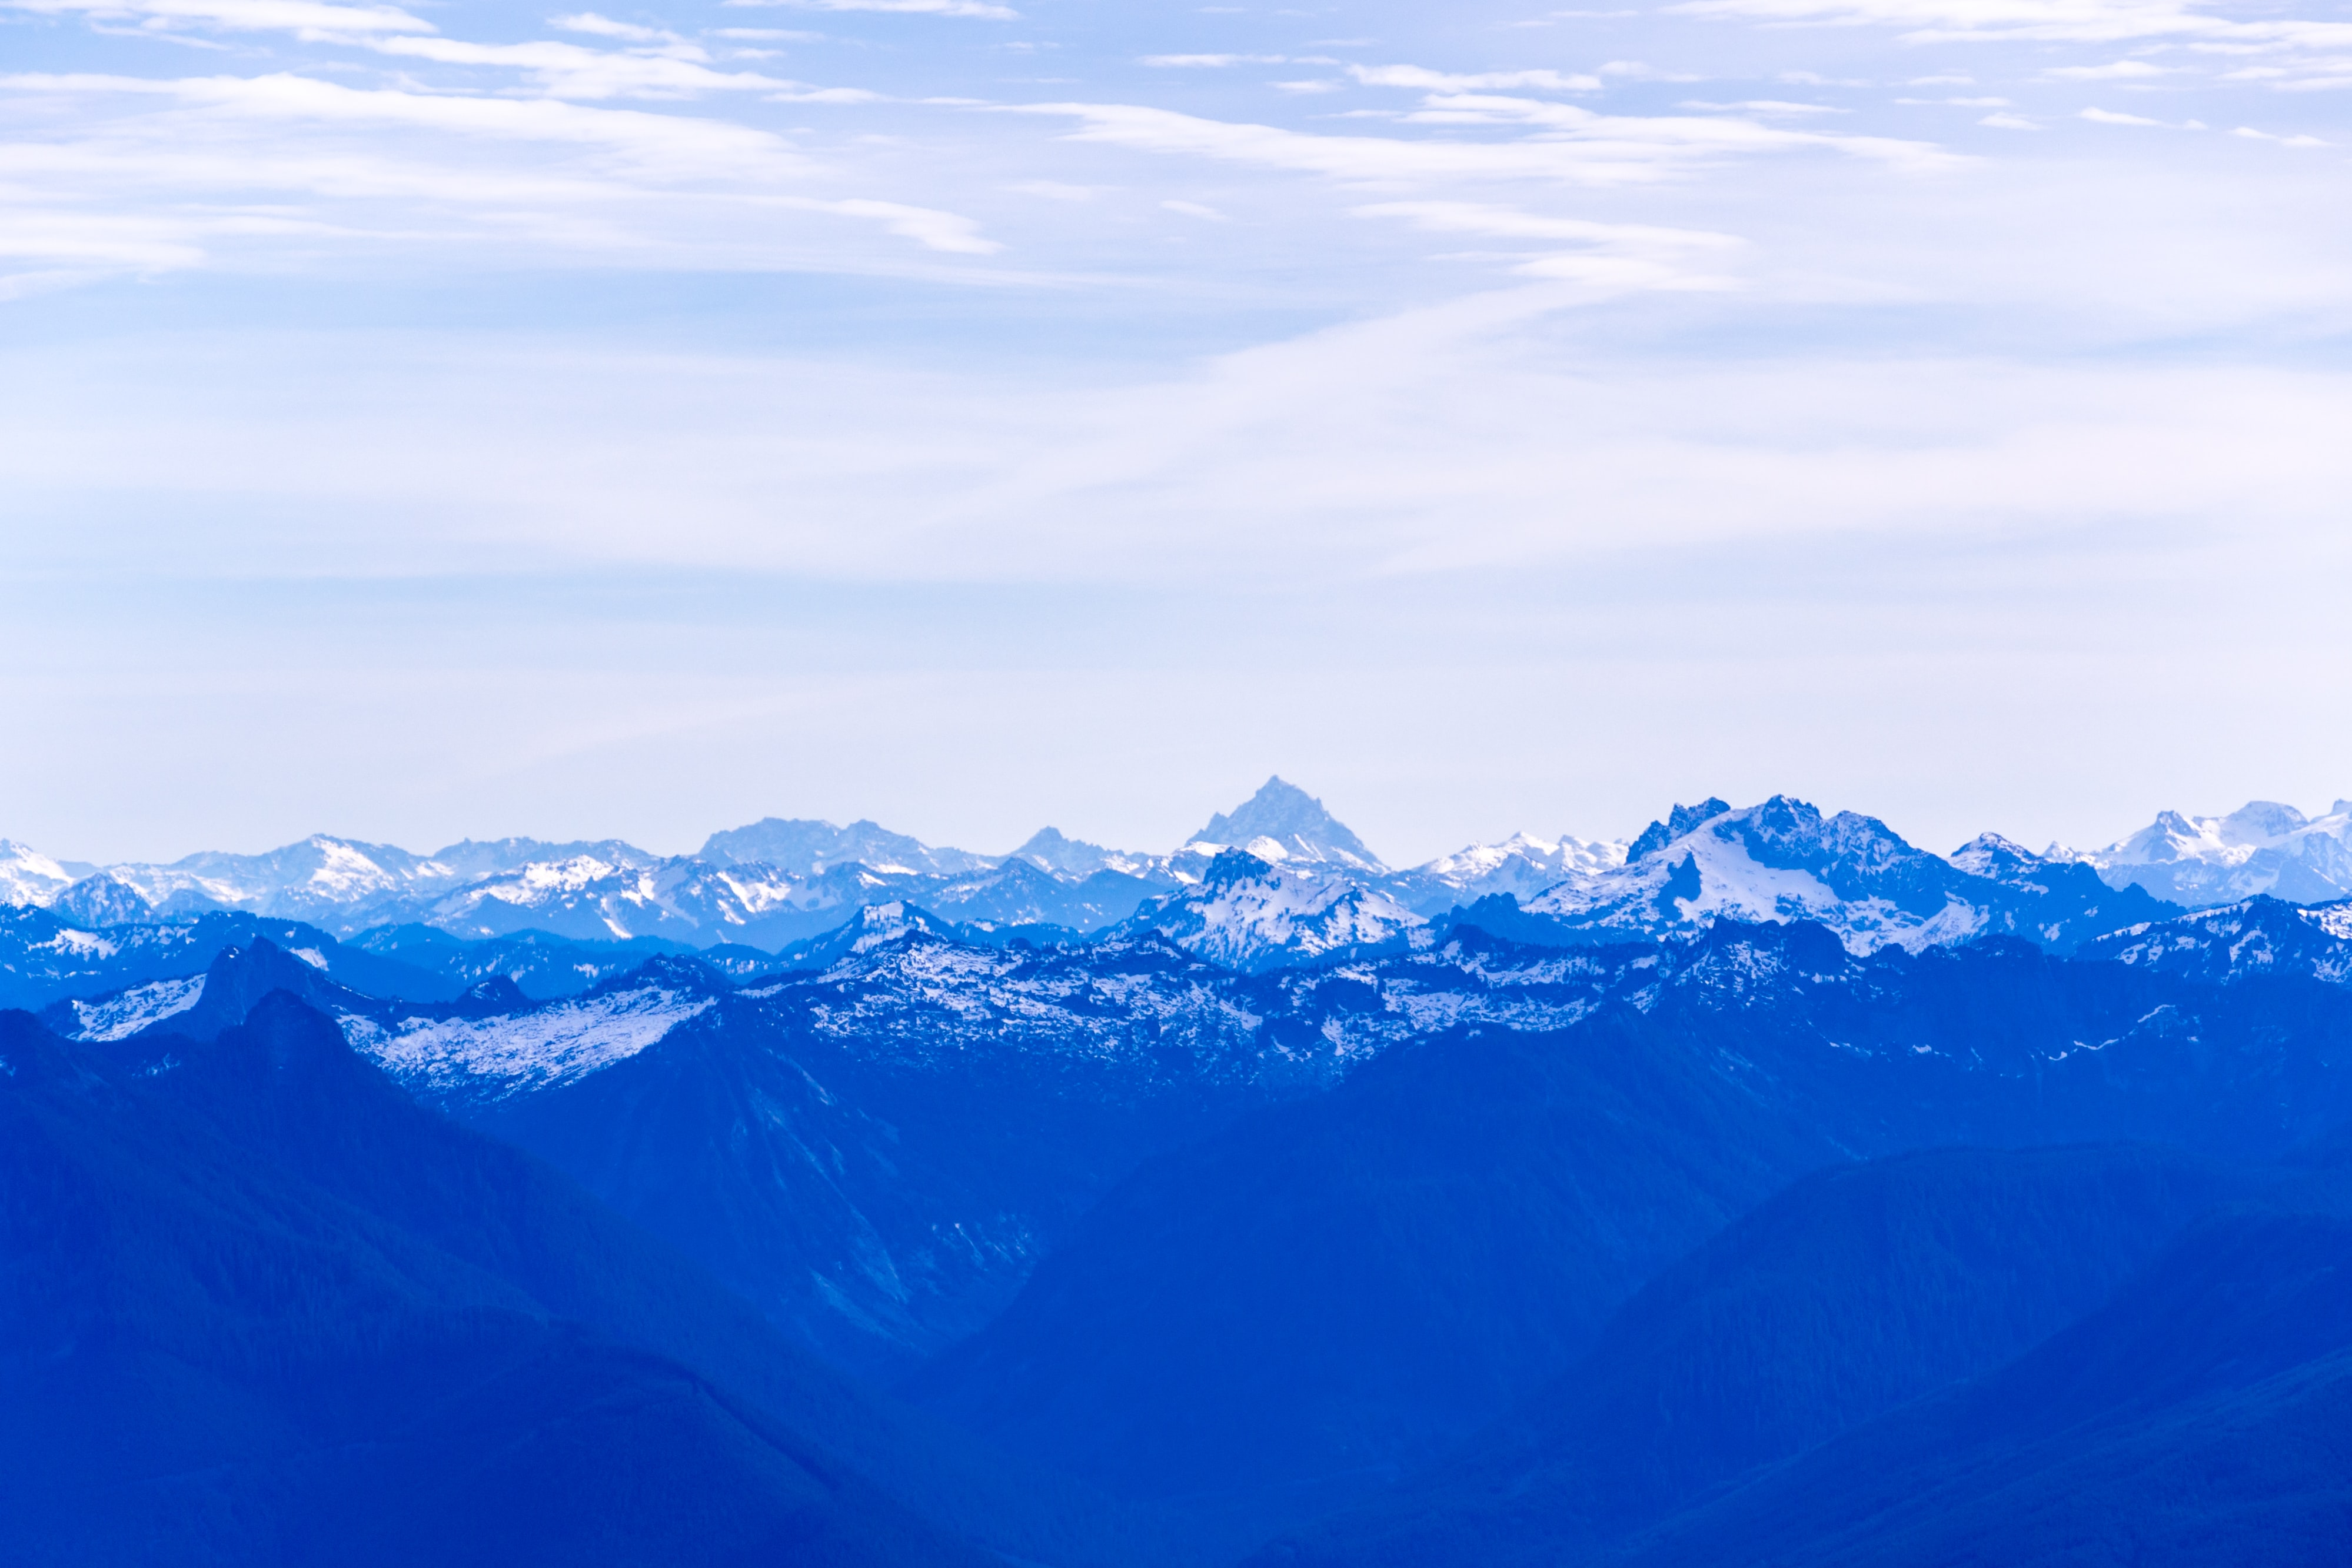 The sharp peak of Mount Pilchuck on the horizon rising up above a hazy mountain range